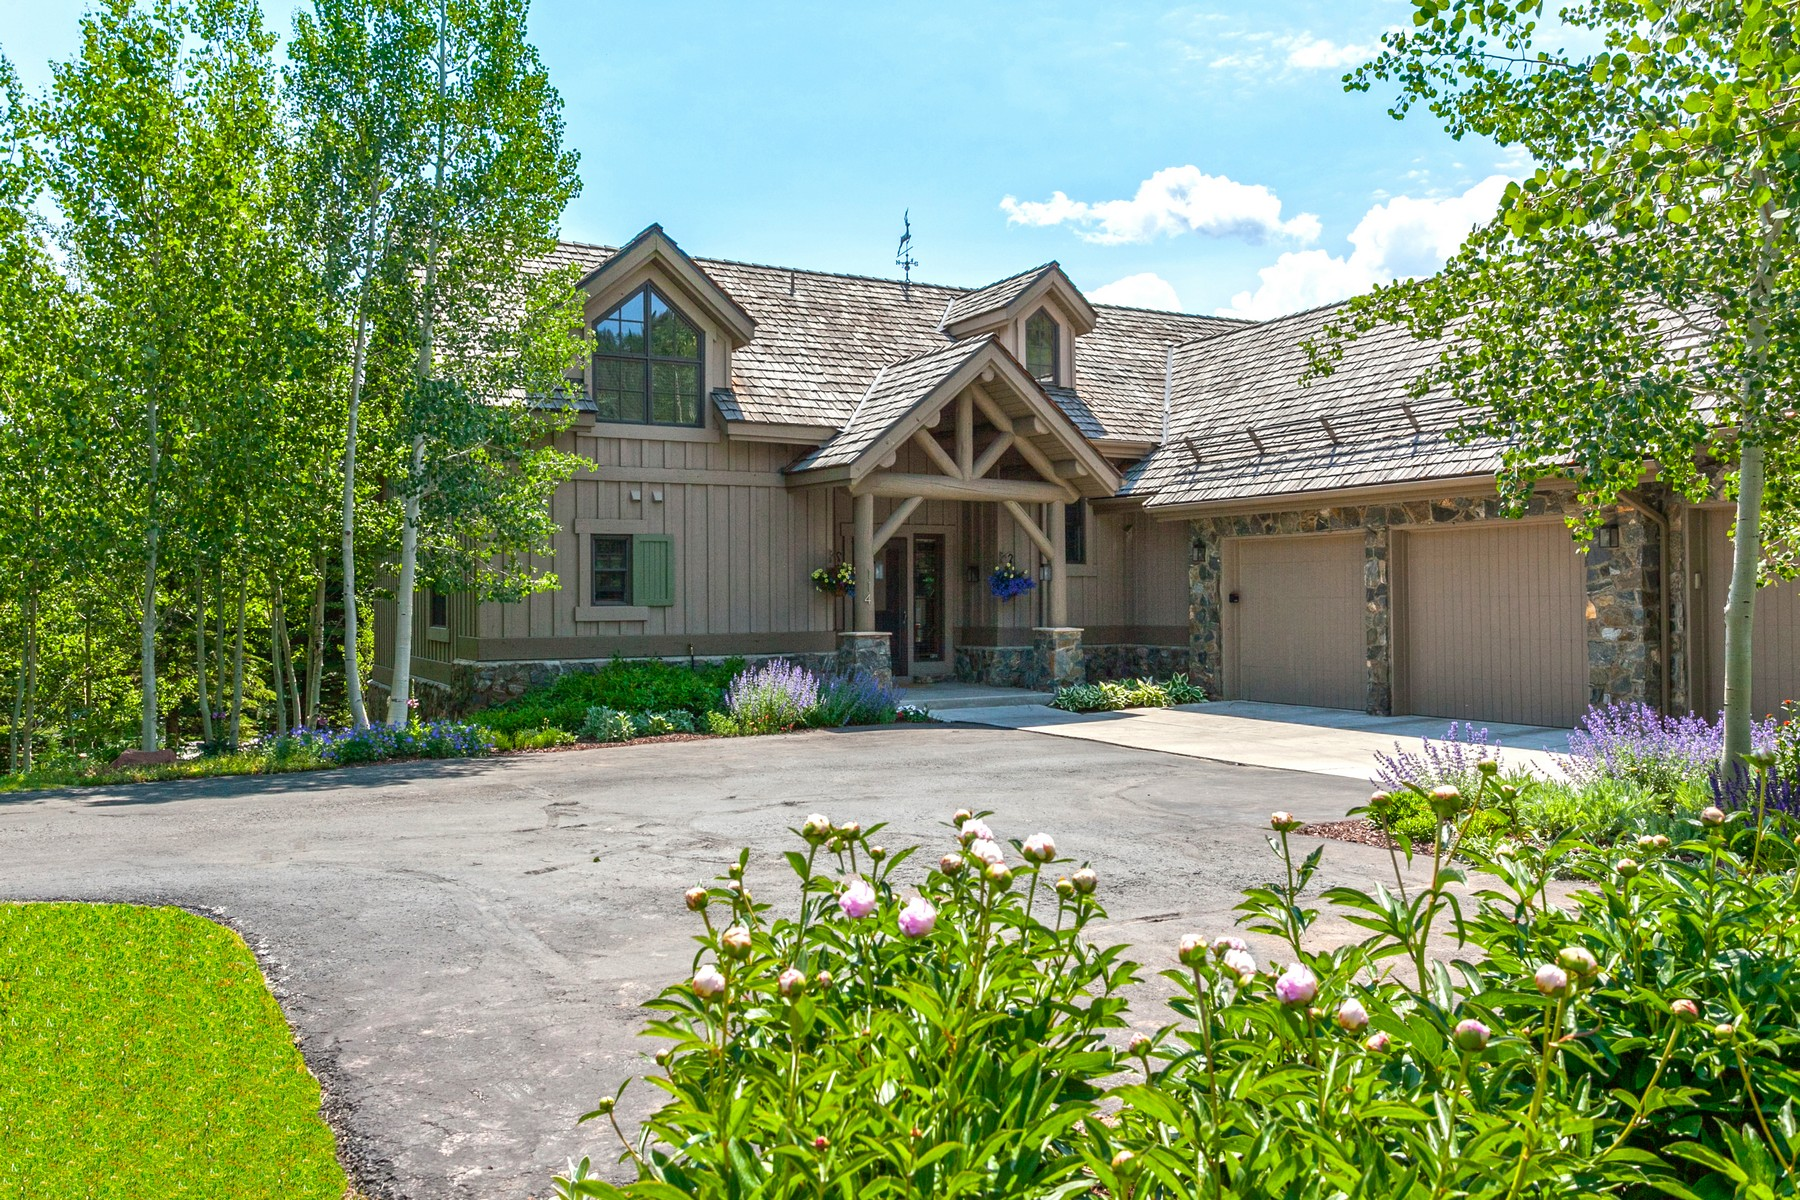 Single Family Home for Active at Cordillera Golf Course Living 114 Bermuda Drive Edwards, Colorado 81632 United States